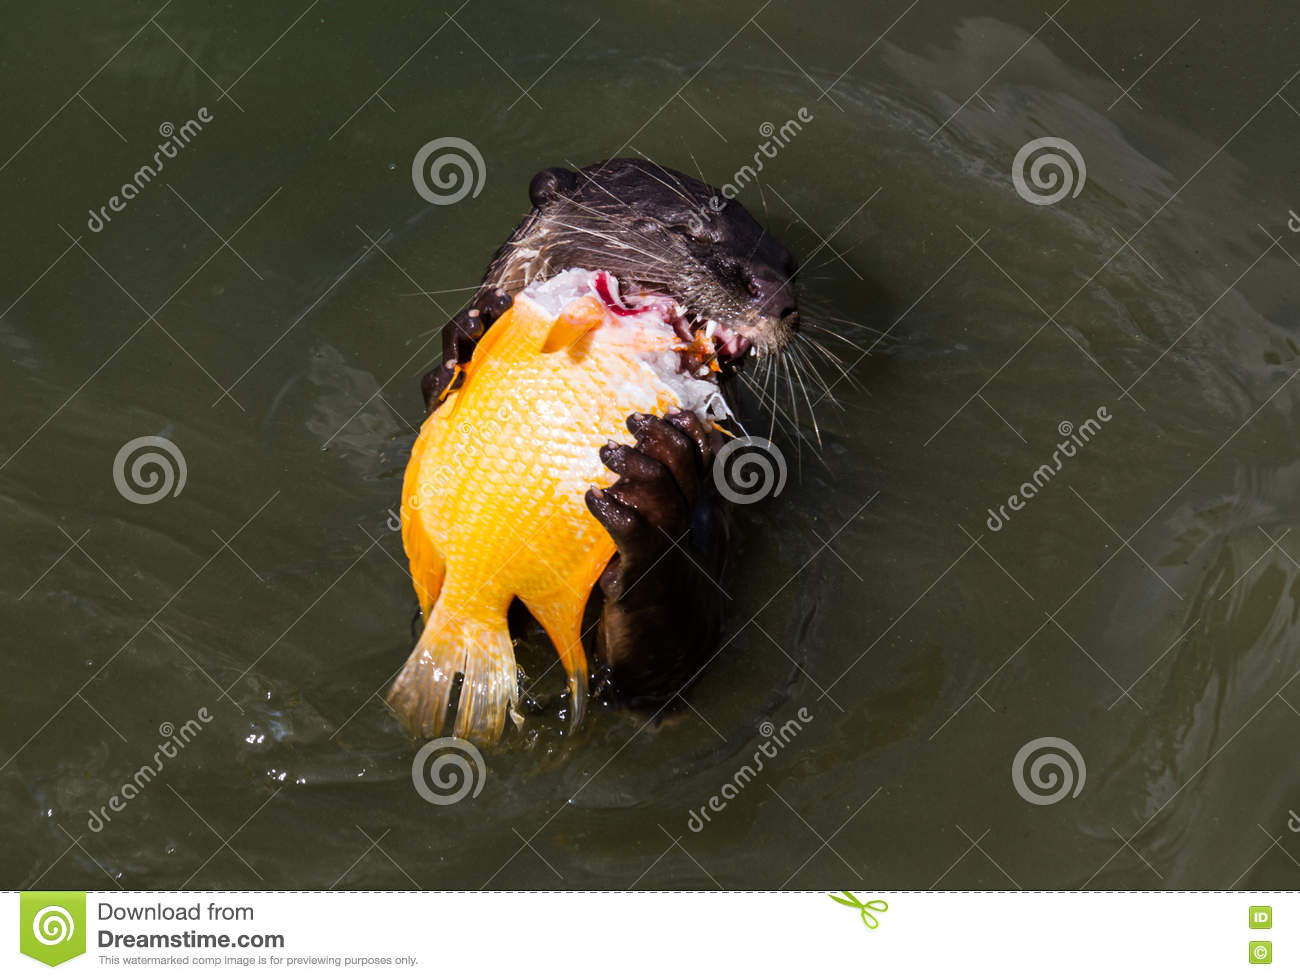 Otter eating fish stock photo image of eating endangered for Dreaming of eating fish